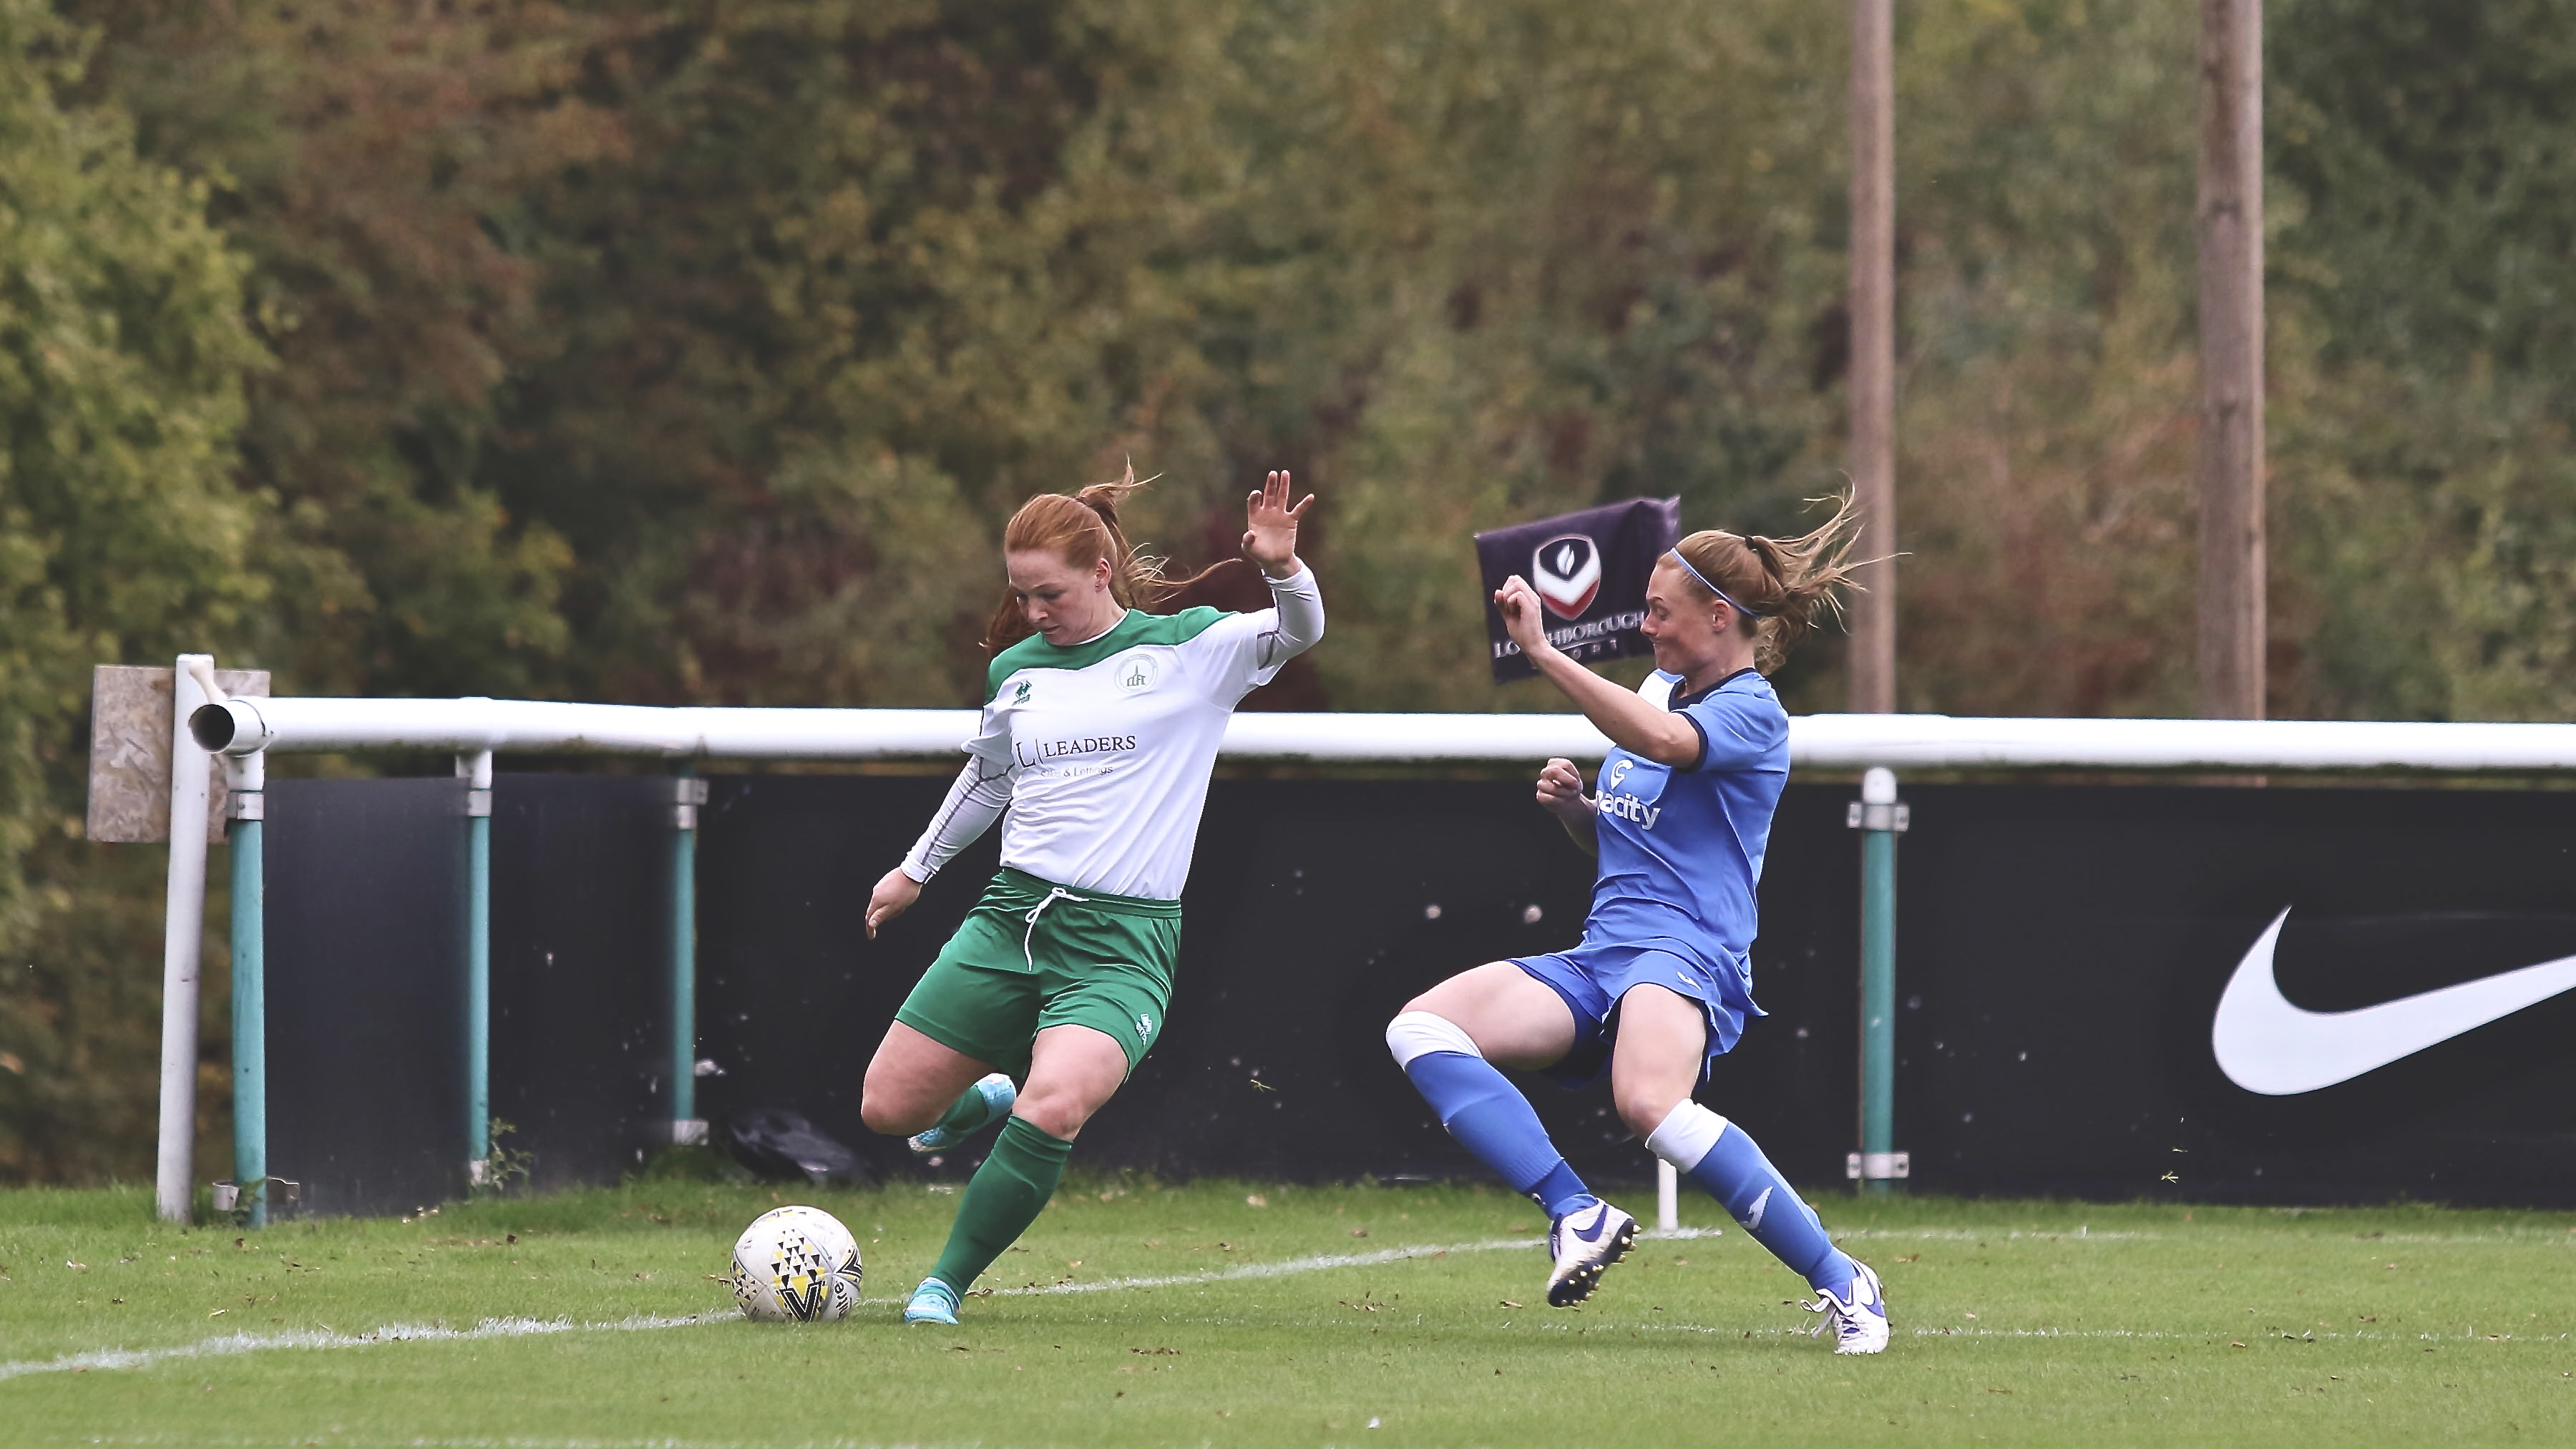 Jade Widdow puts on a cross as the Loughborough player goes in to block it.